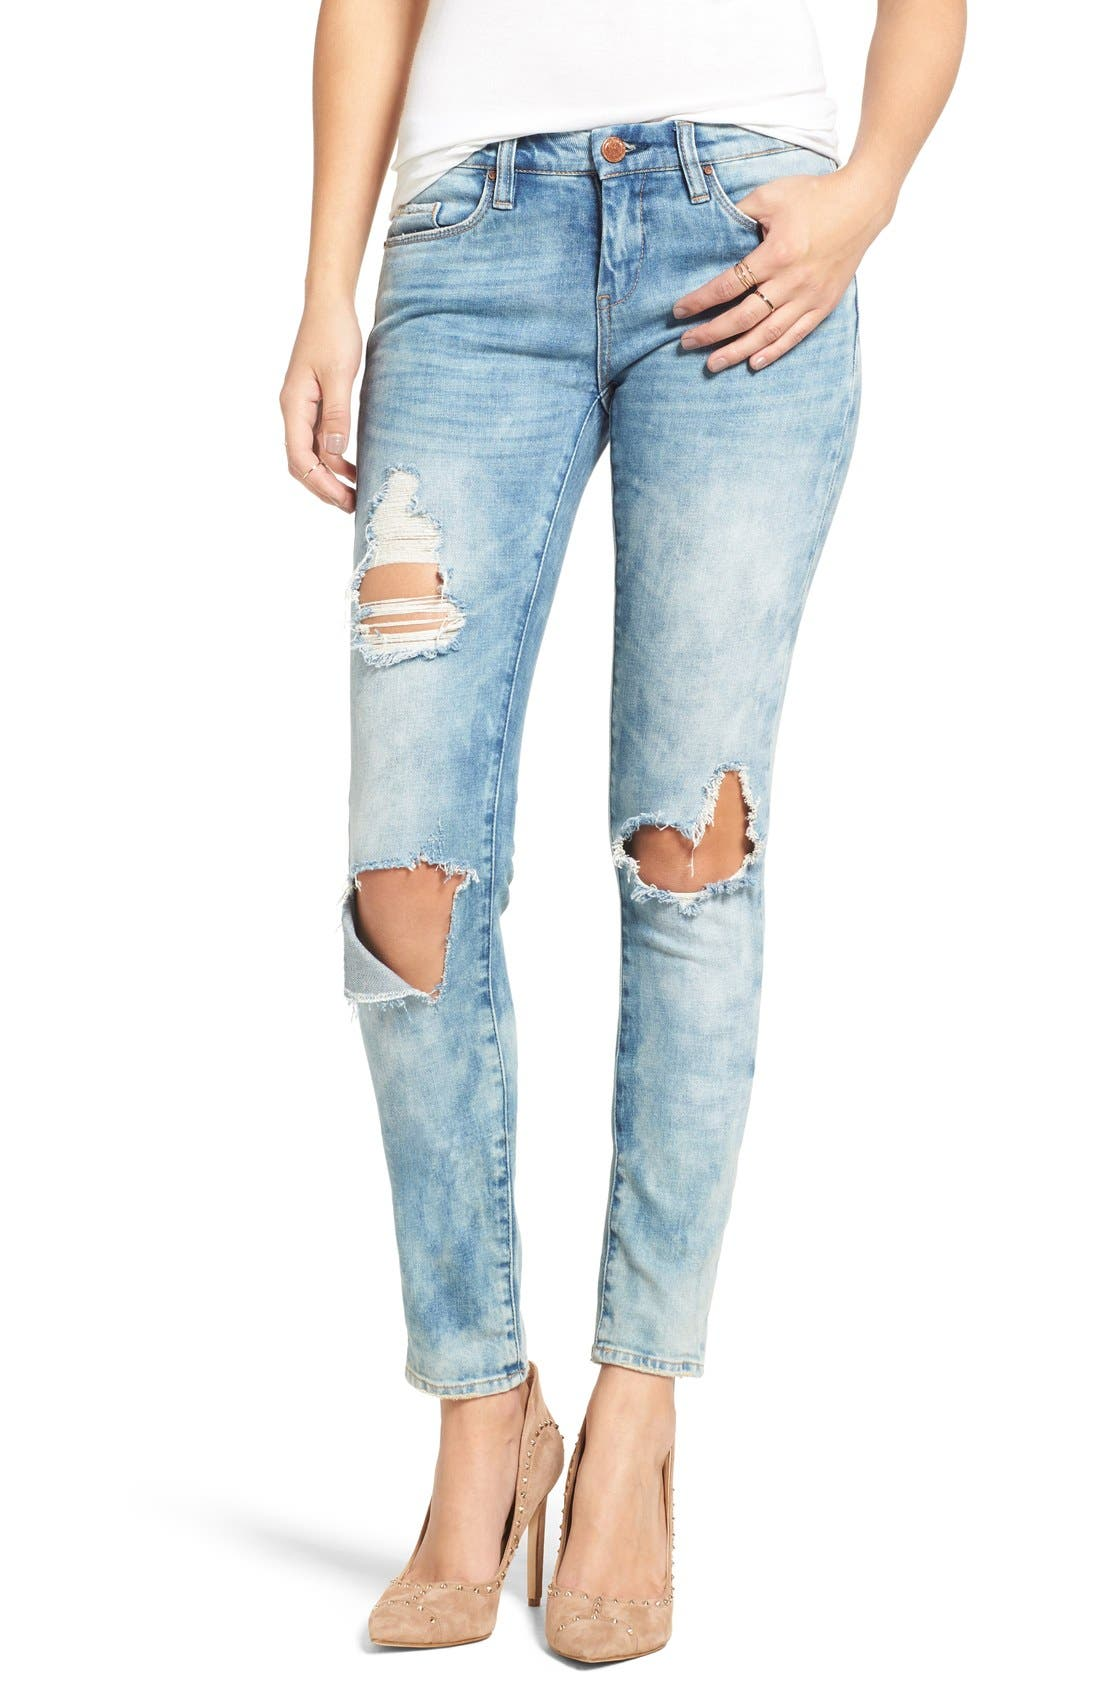 Alternate Image 1 Selected - BLANKNYC Good Vibes Distressed Skinny Jeans (Medium Wash Blue)